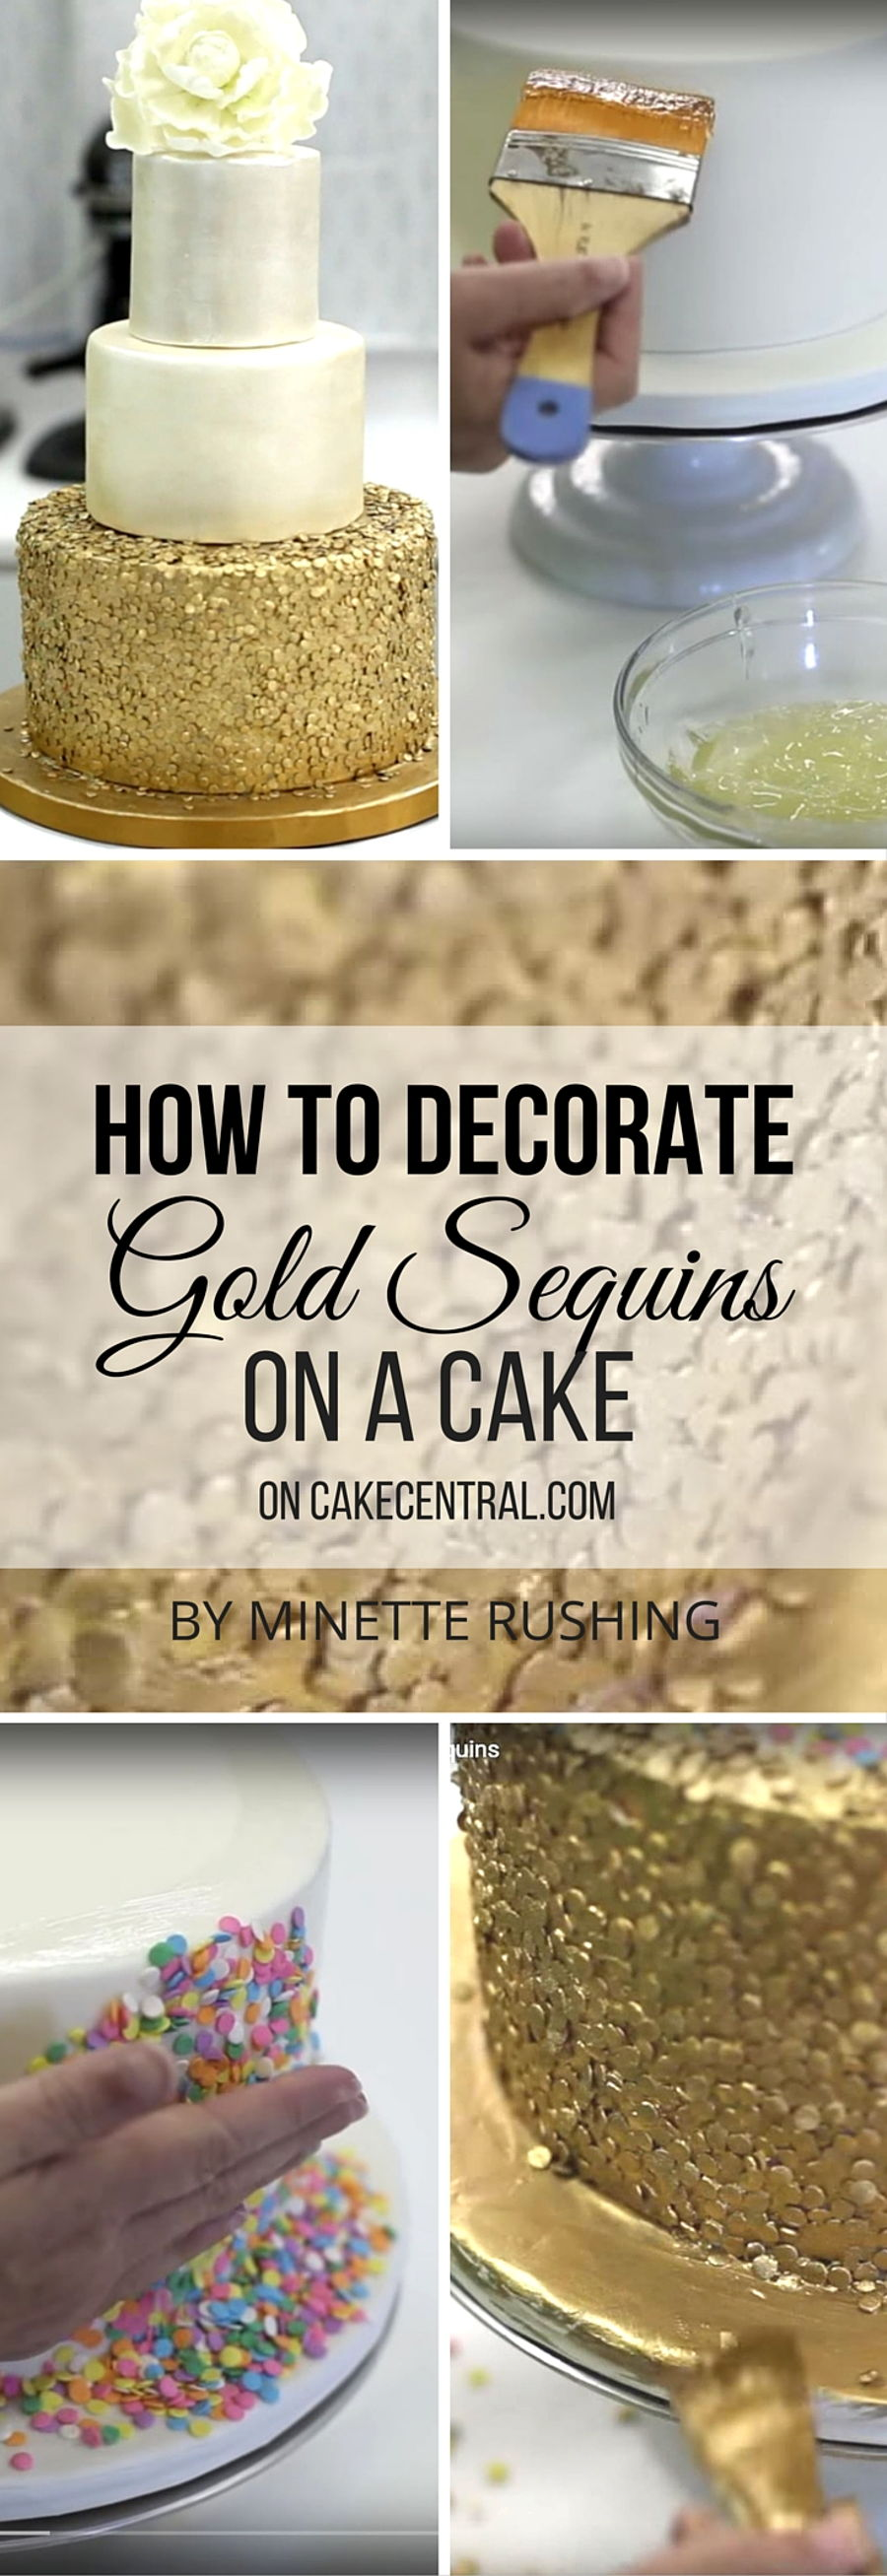 How To Decorate A Cake With Gold Sequins - CakeCentral.com